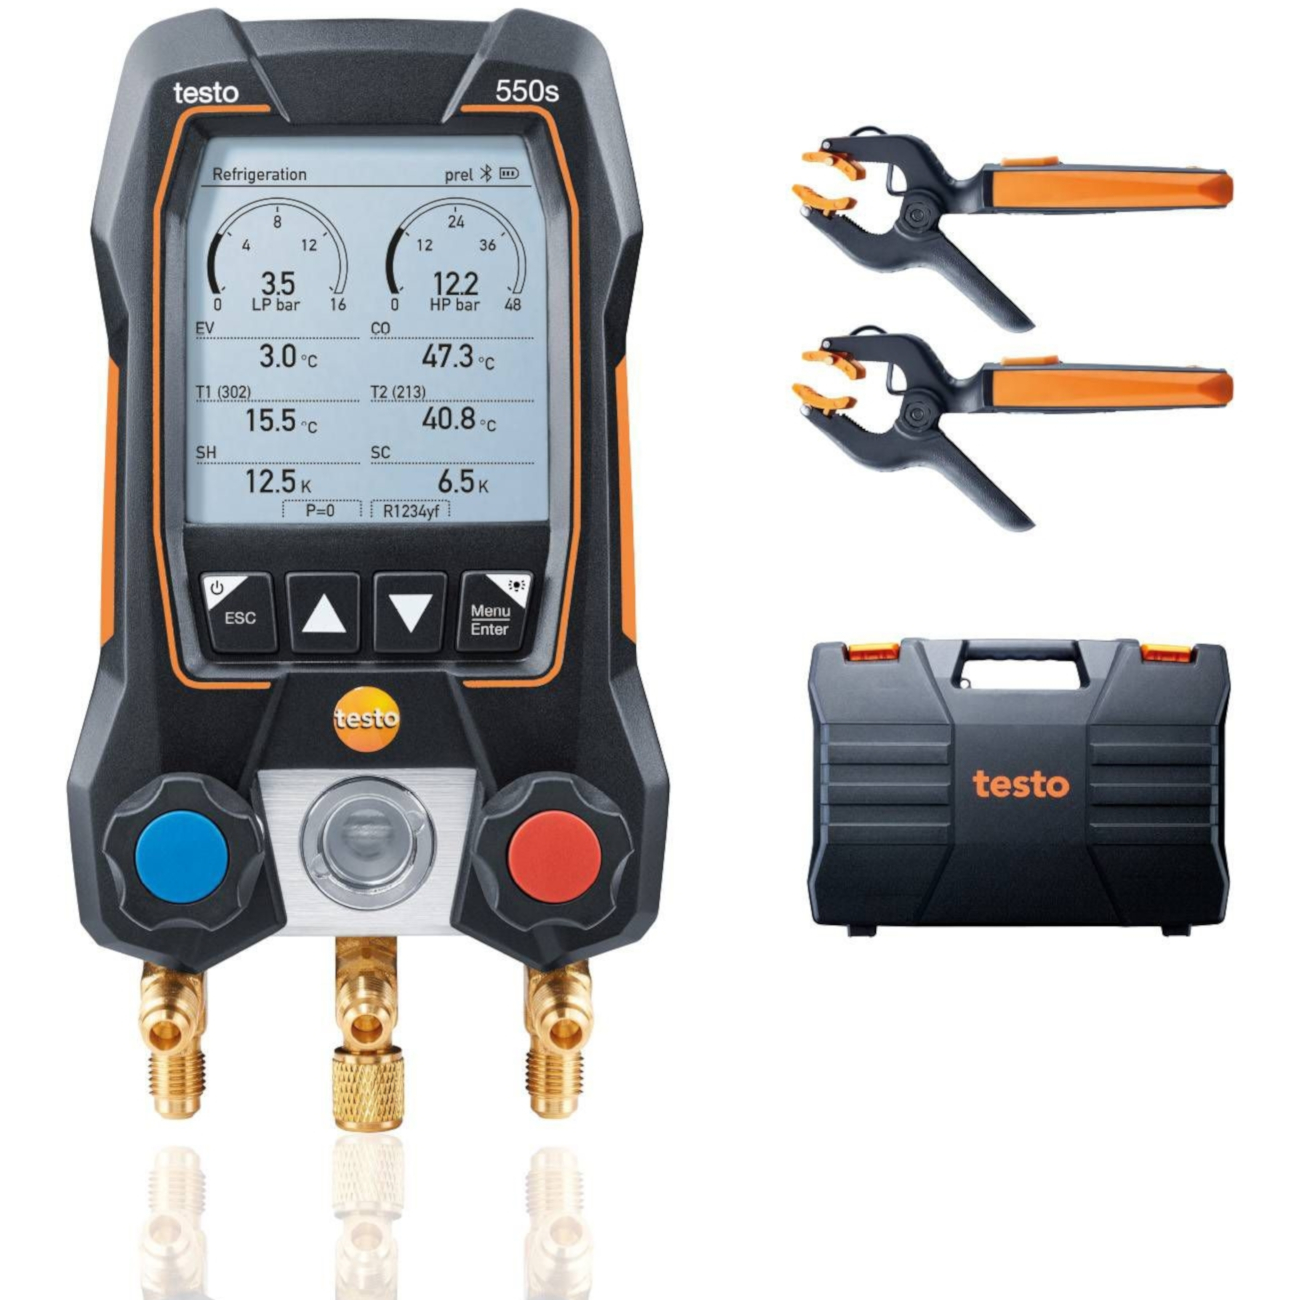 Testo 550s Smart Kit - Digital Manifold with Wireless Temperature Clamps Part 0564 5502 01